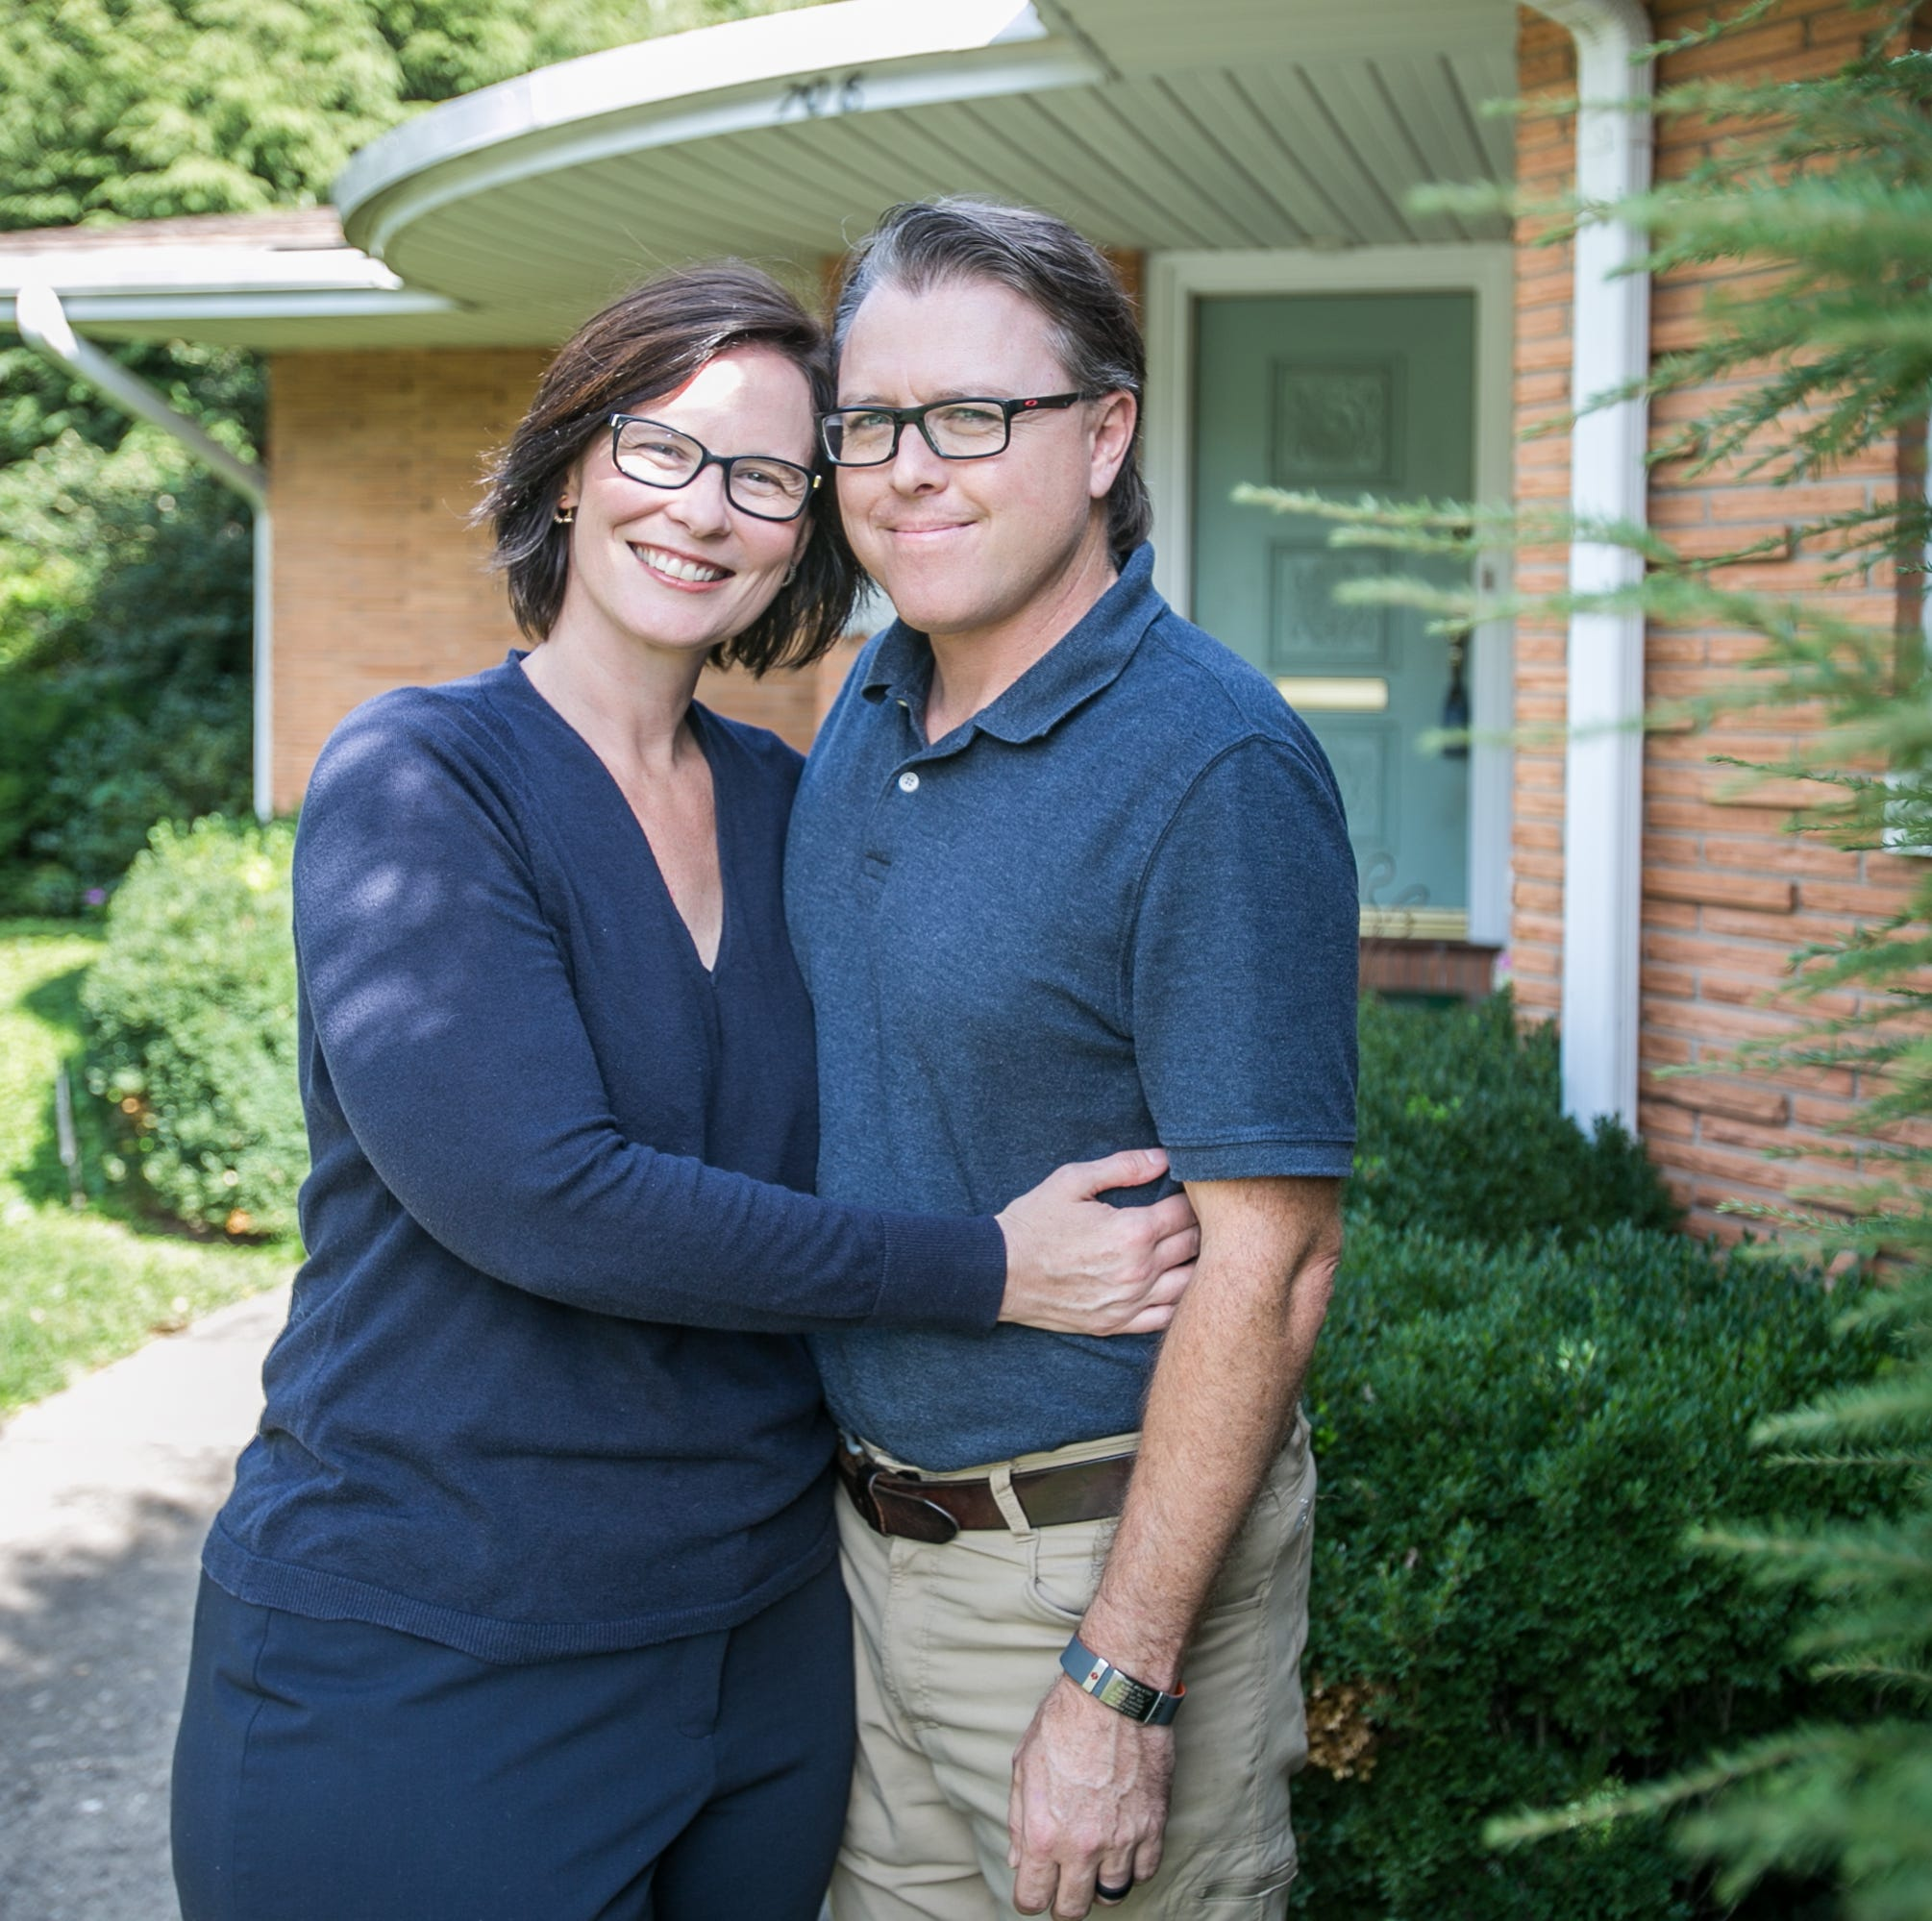 University Heights home needed work but was a dream